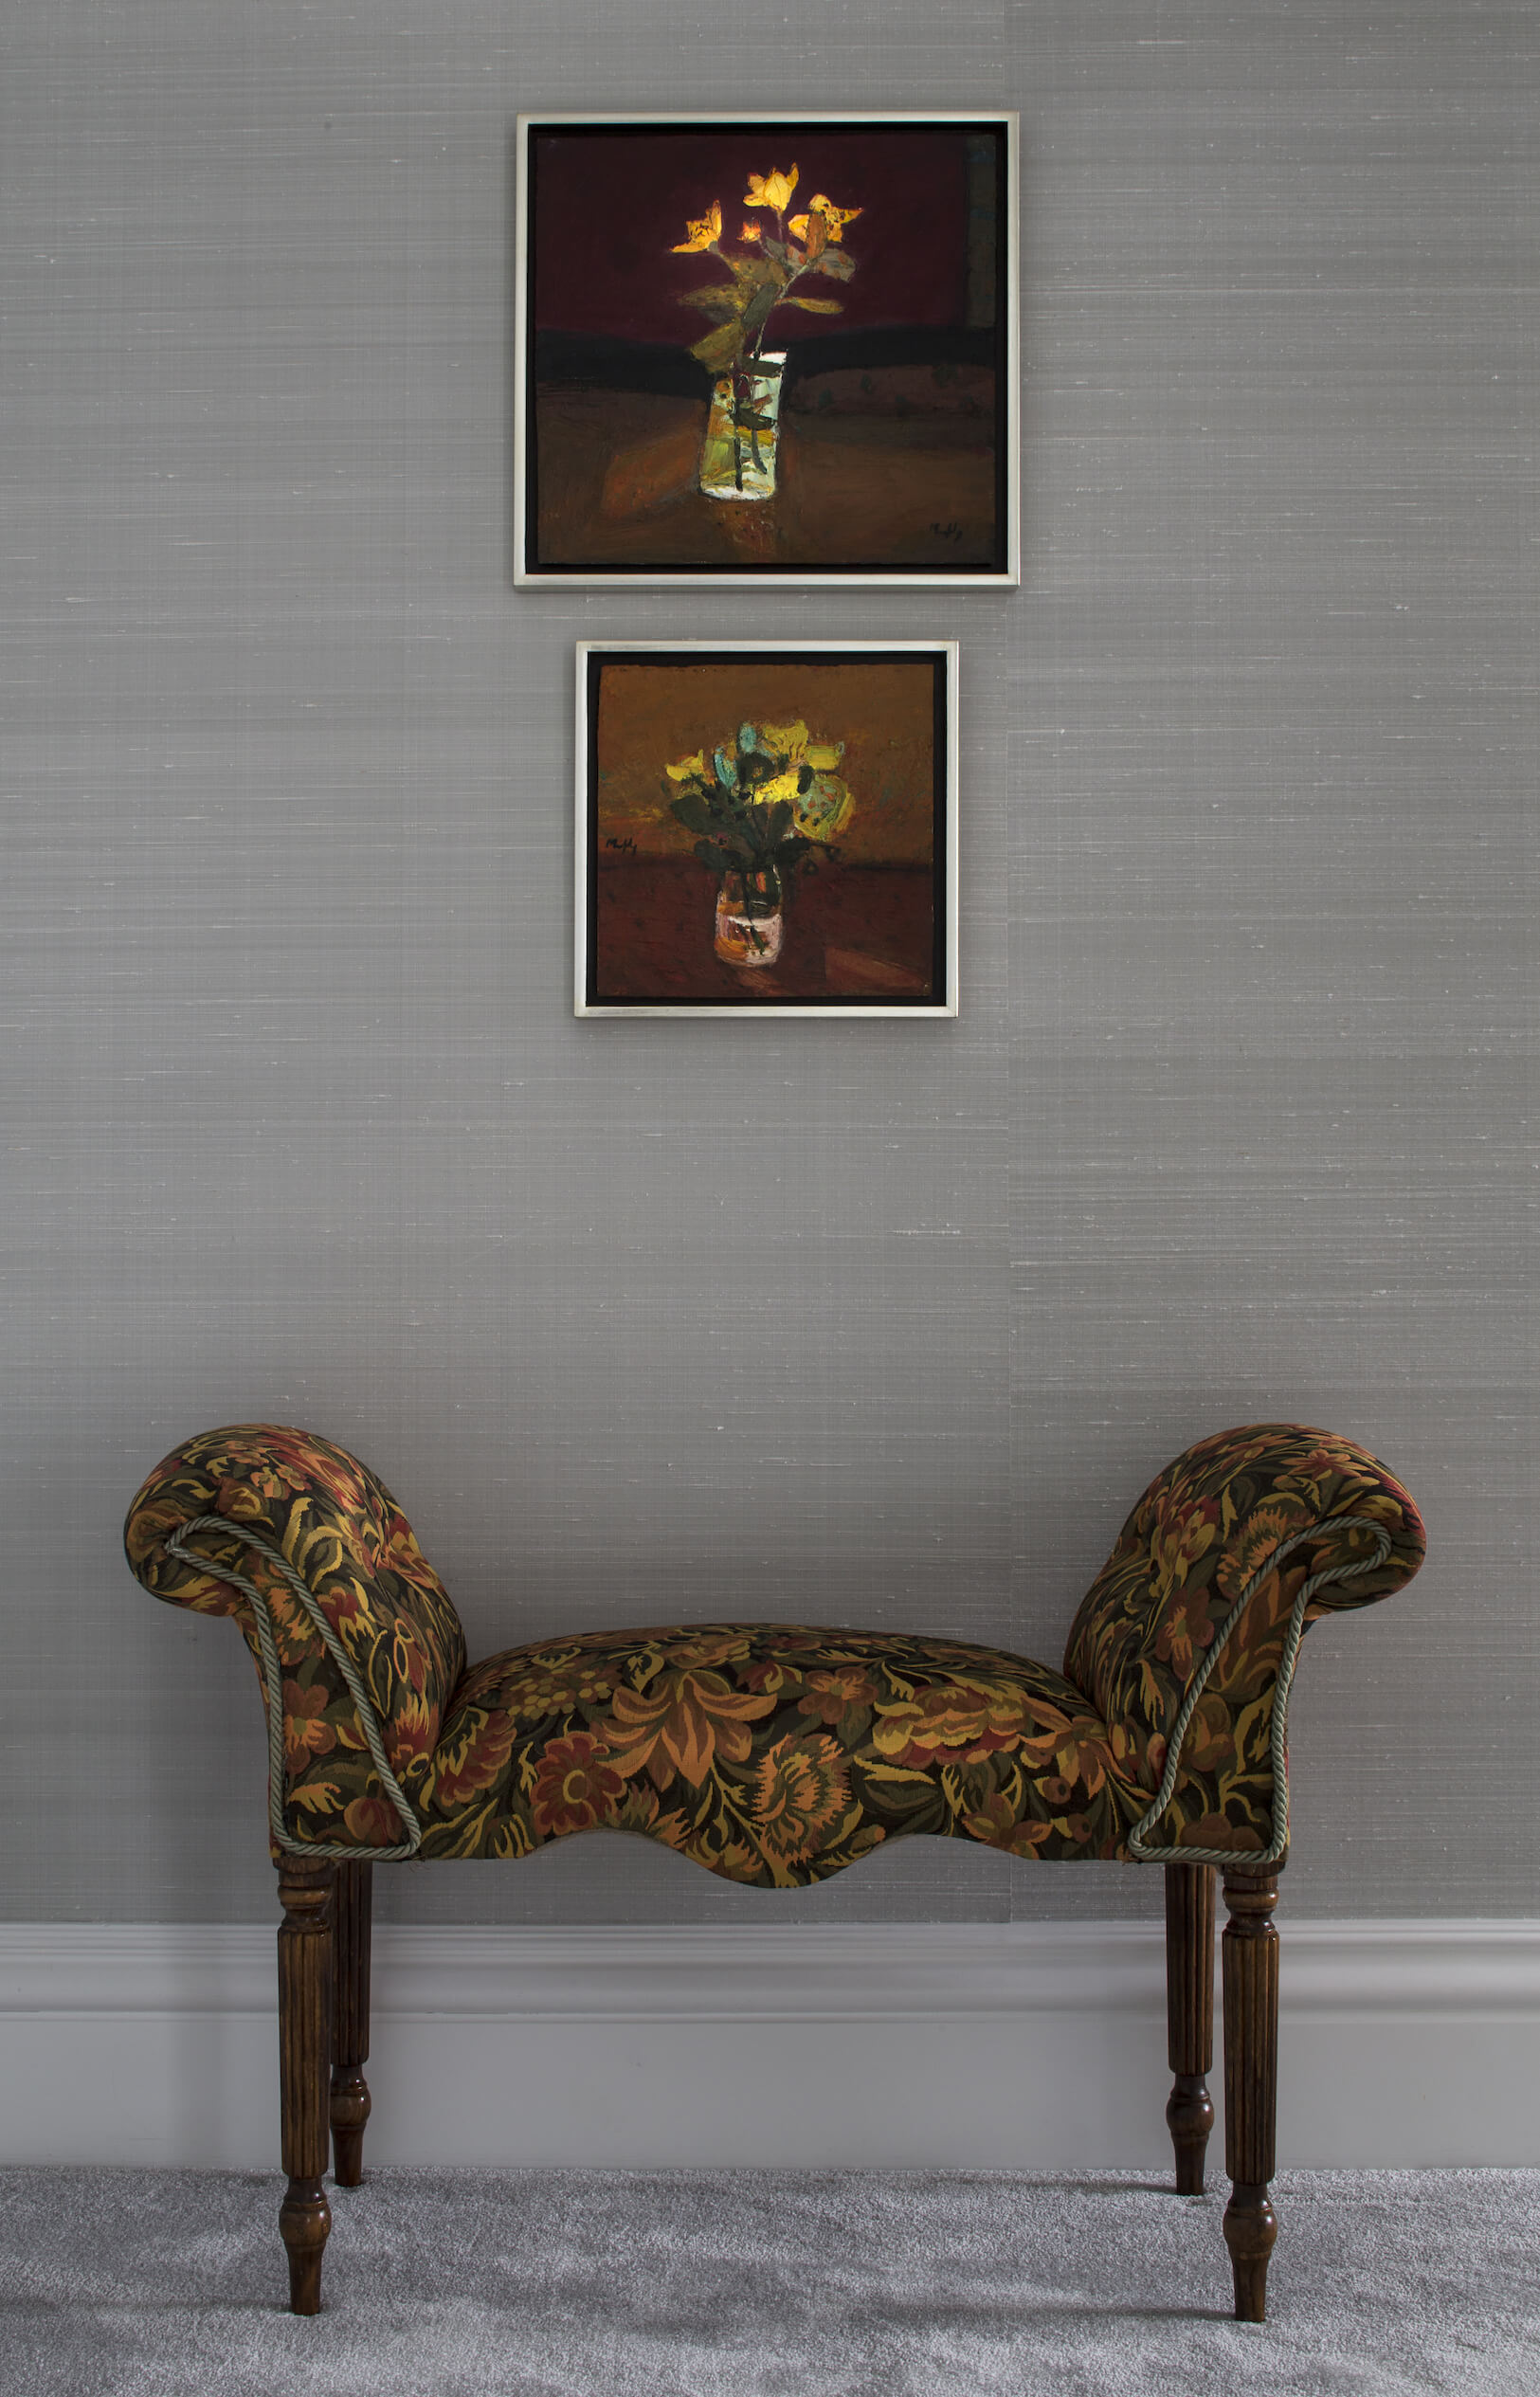 Another example of the interplay of rich detail and soft neutral tones is this backless armchair with floral upholstery and carved wood arrow feet, standing below a pair of paintings in matching tones.